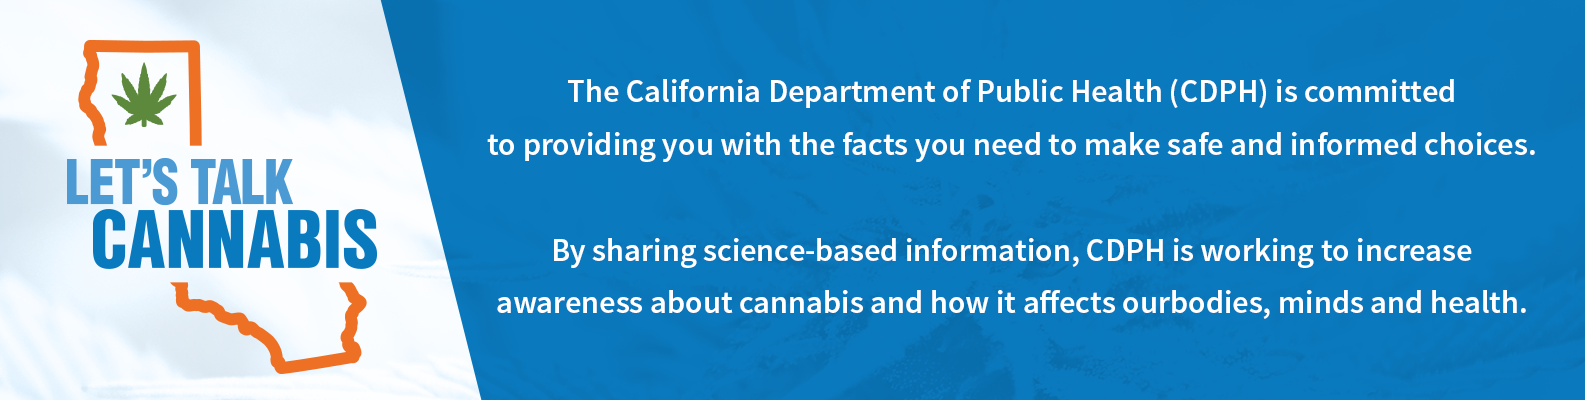 Let's Talk Cannabis Logo and text that reads: the California Department of Public HEalth (CDPH) is committed to providing you with the facts you need to make safe and informed choices. By sharing science-based information, CDPH is working to increase awareness about cannabis and how it affects our bodies, minds and health